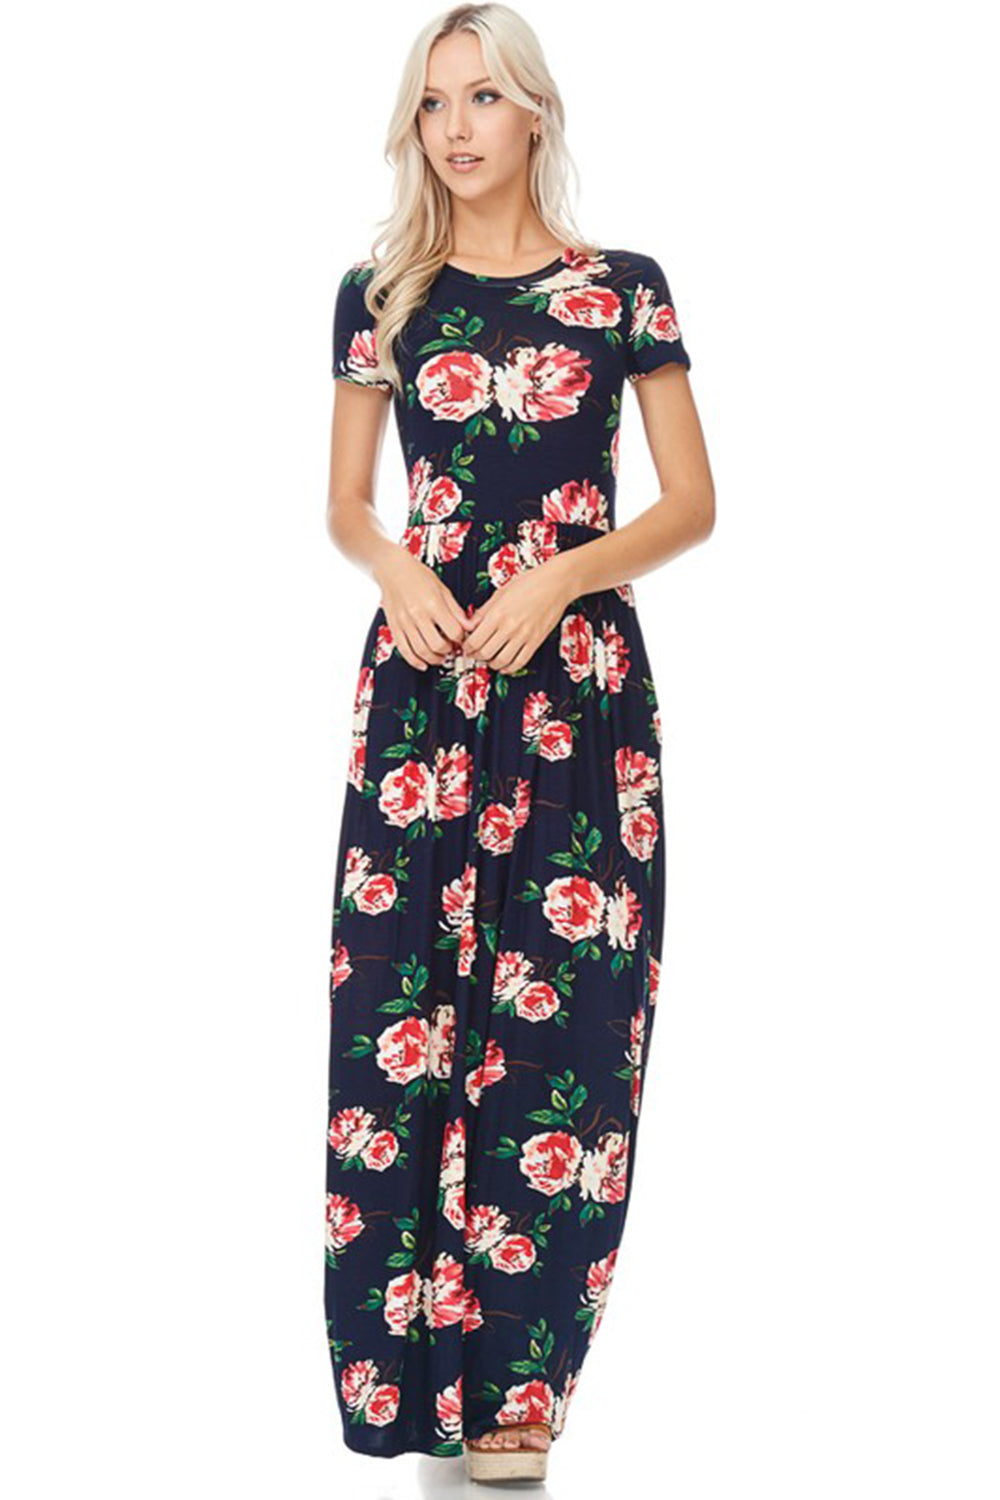 Aynara Fashion Floral Print Maxi Dress